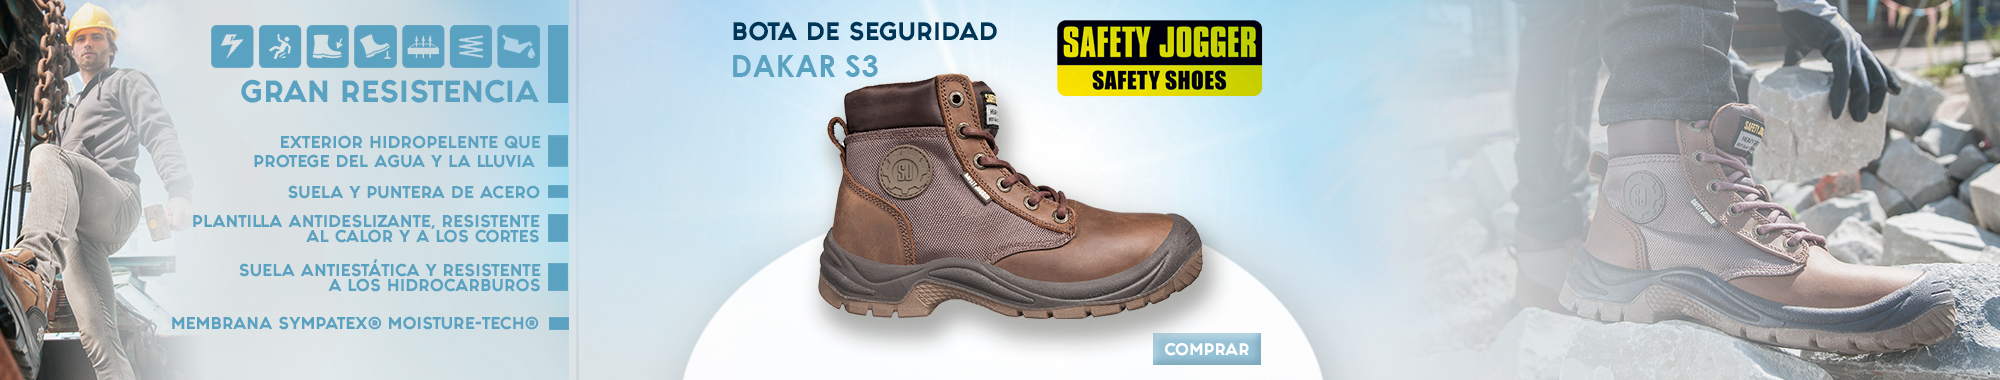 Bota Safety Jogger Dakar